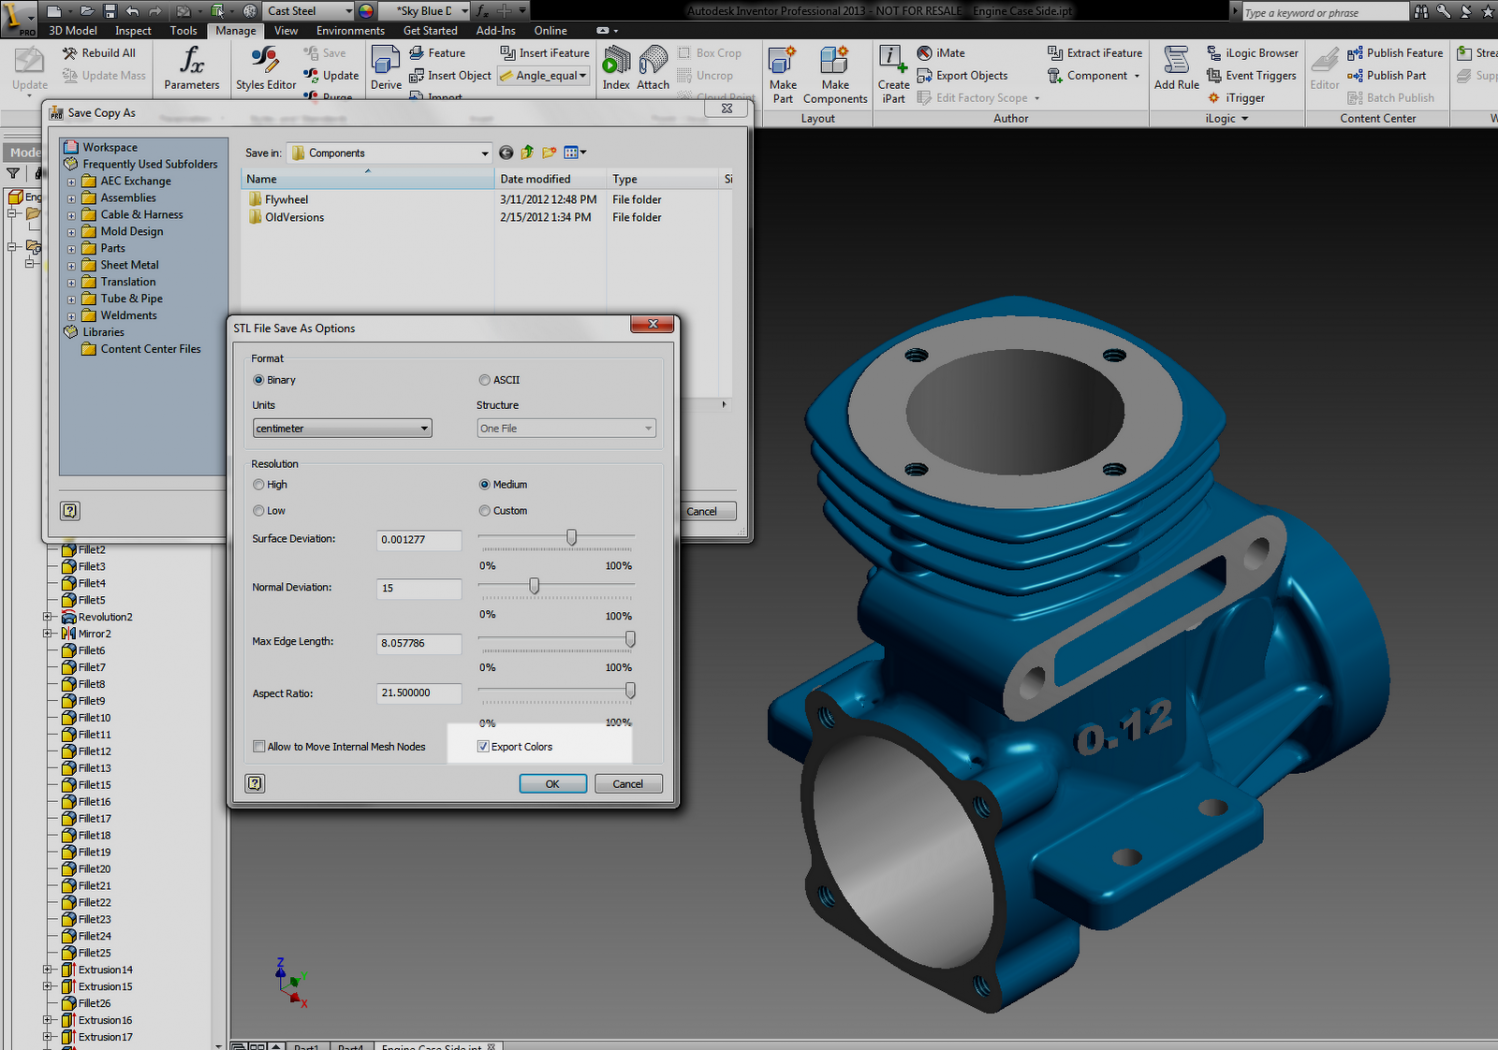 autodesk inventor 2010 free download full version with crack